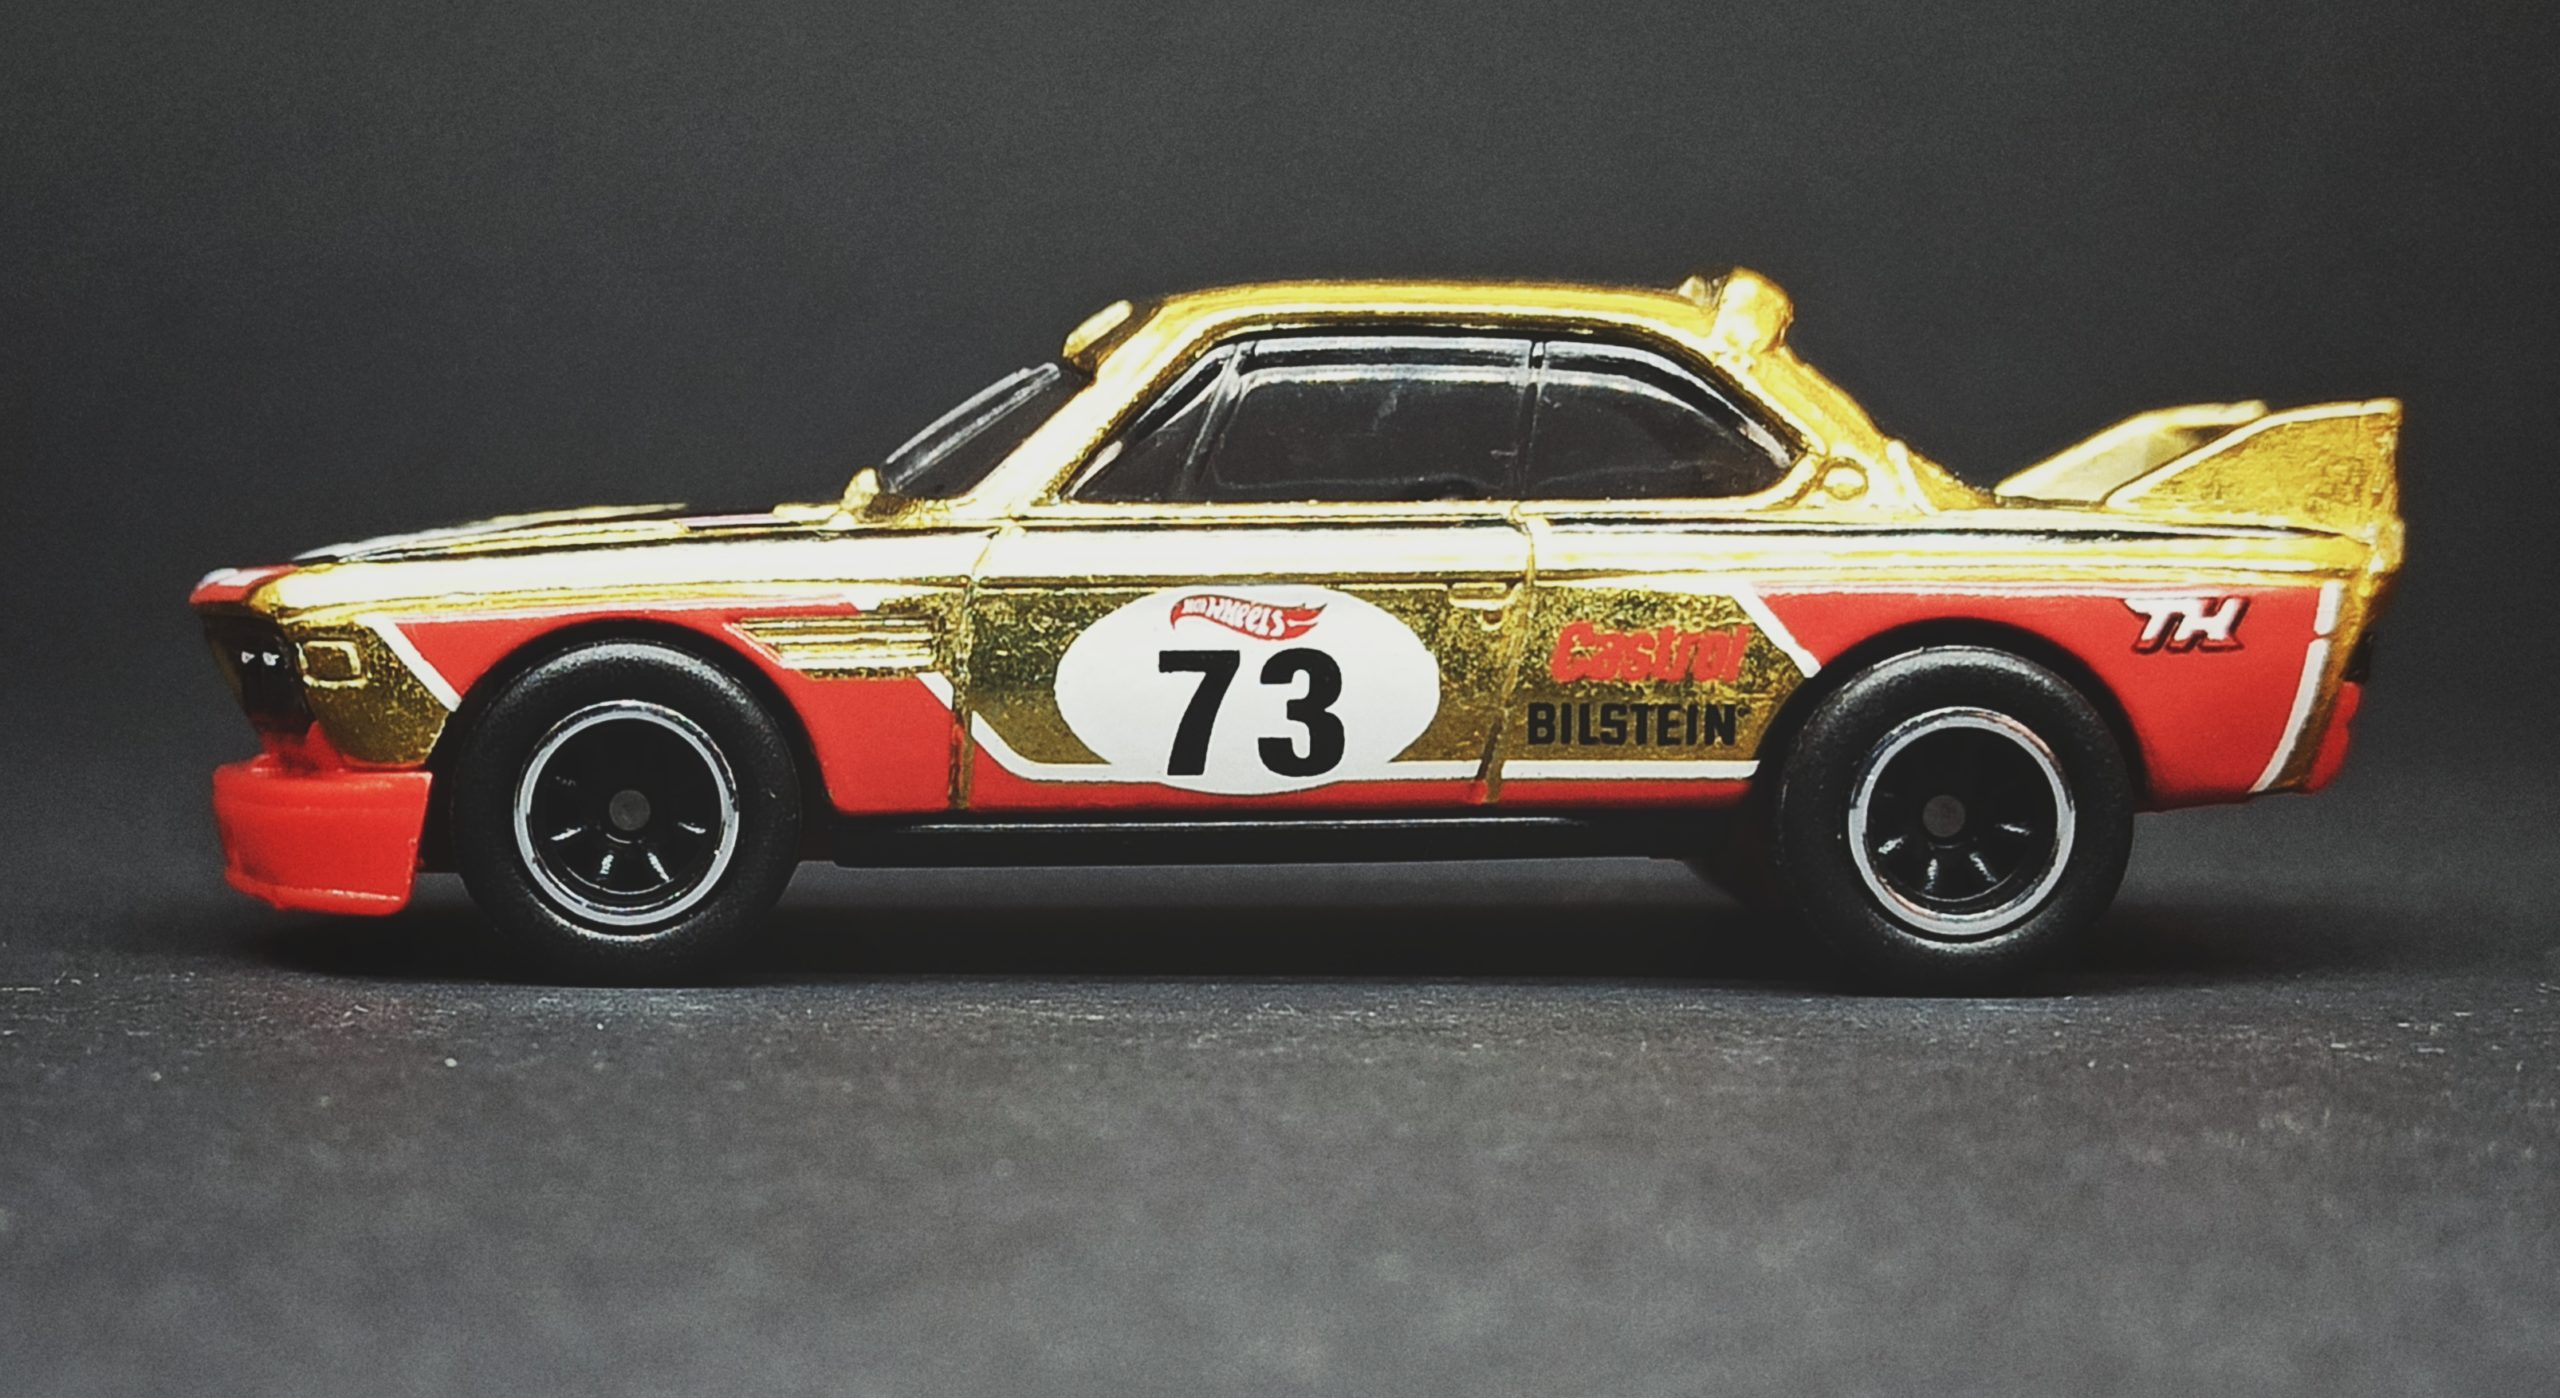 Hot Wheels '73 BMW 3.0 CSL Race Car (HCY20) 2022 (34/250) Retro Racers (2/10) spectraflame yellow (gold) Super Treasure Hunt (STH) side